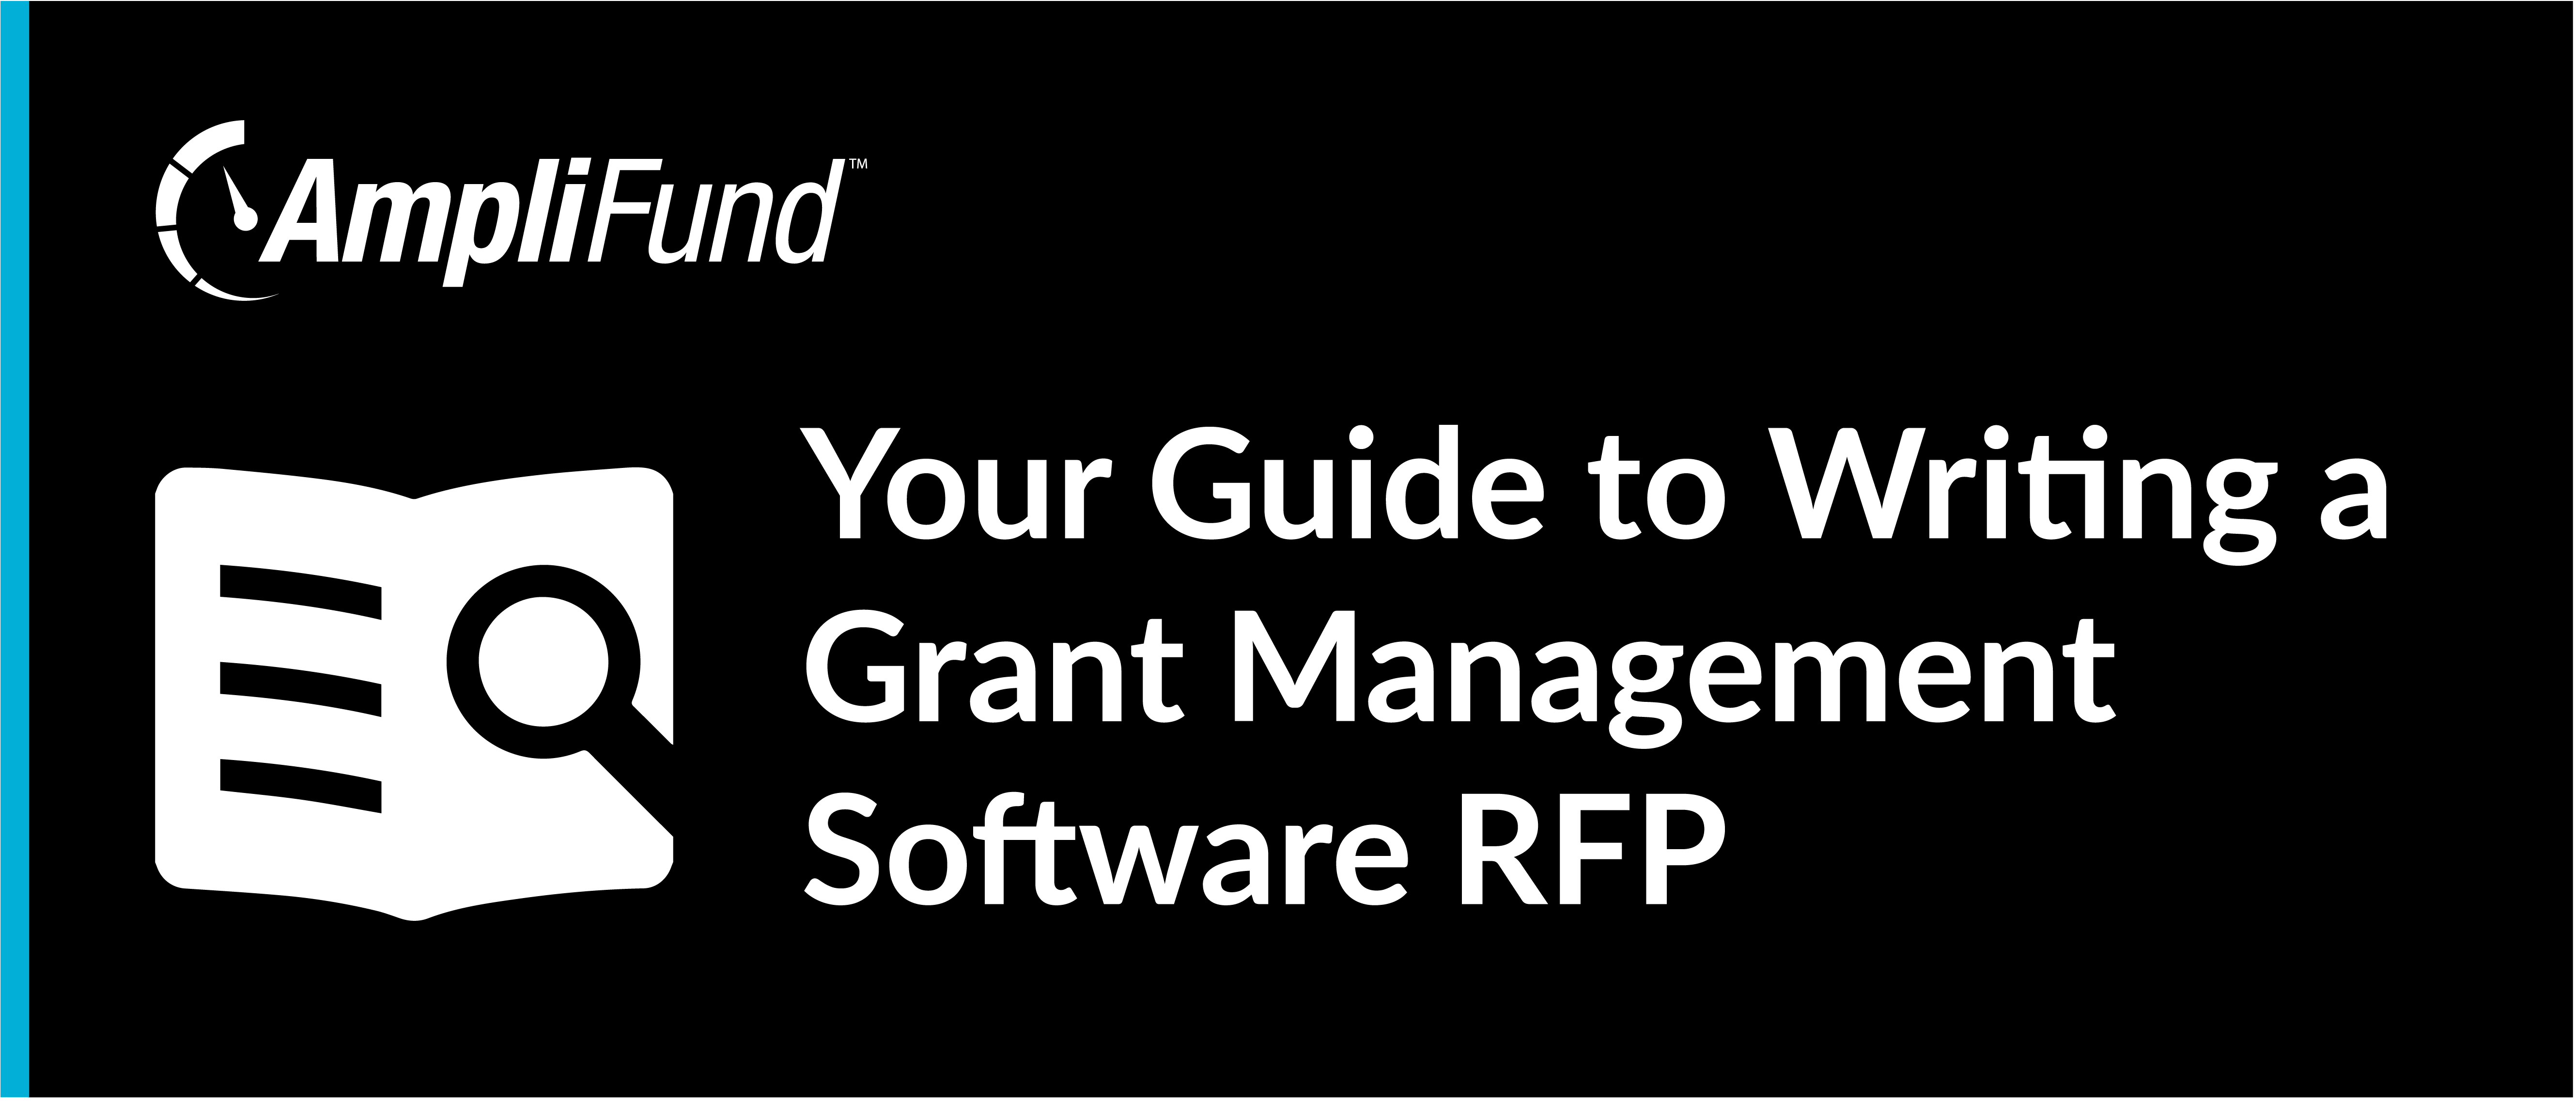 Building Your Grant Management Software RFP [Downloadable Template]